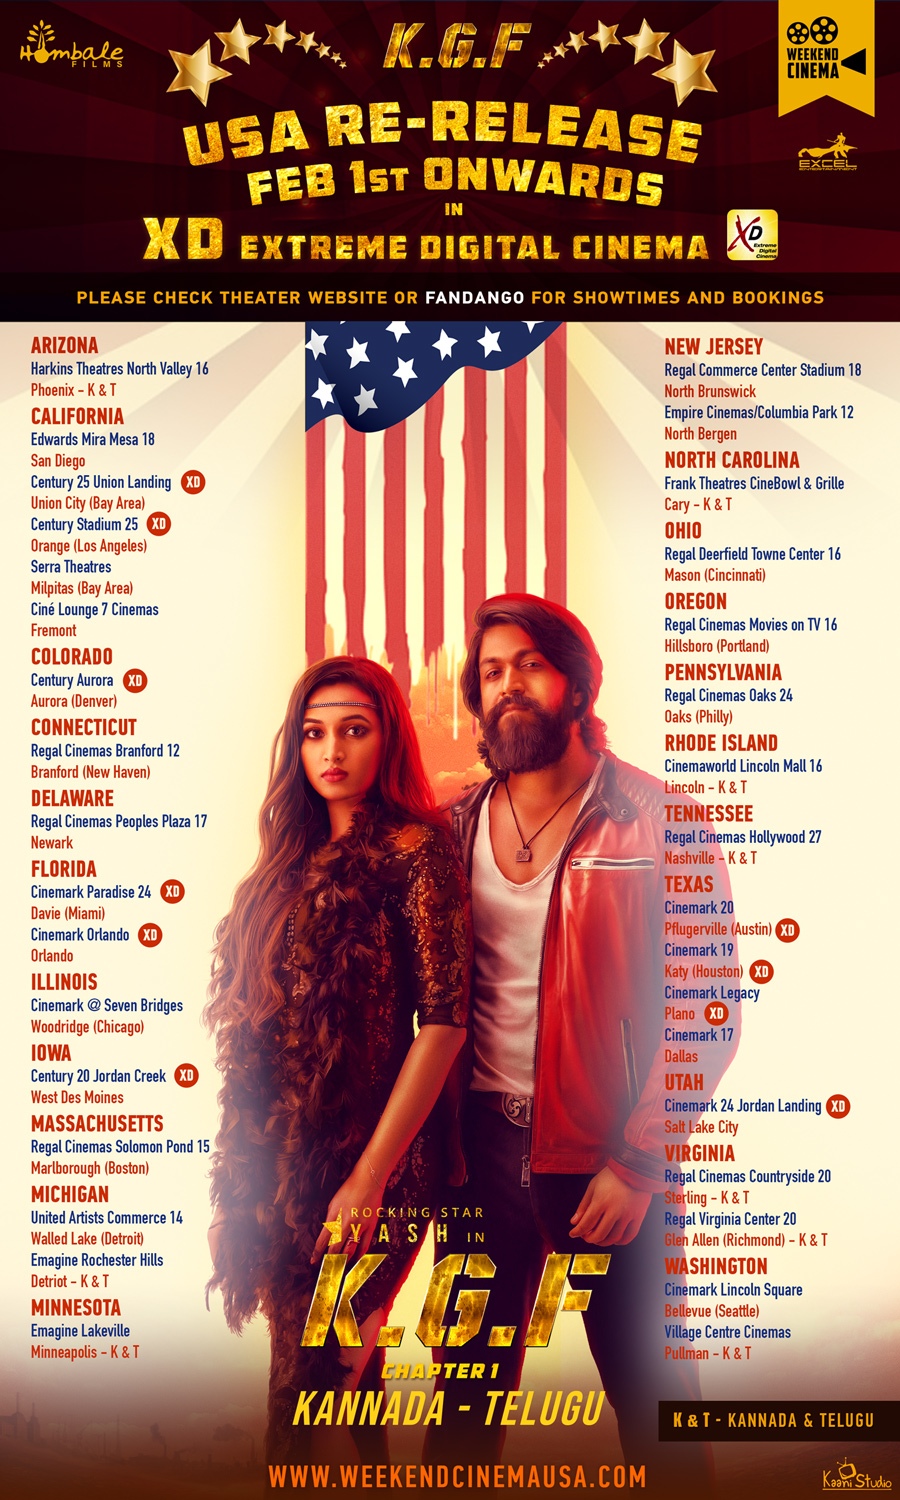 KGF Movie USA Re Release Theaters List